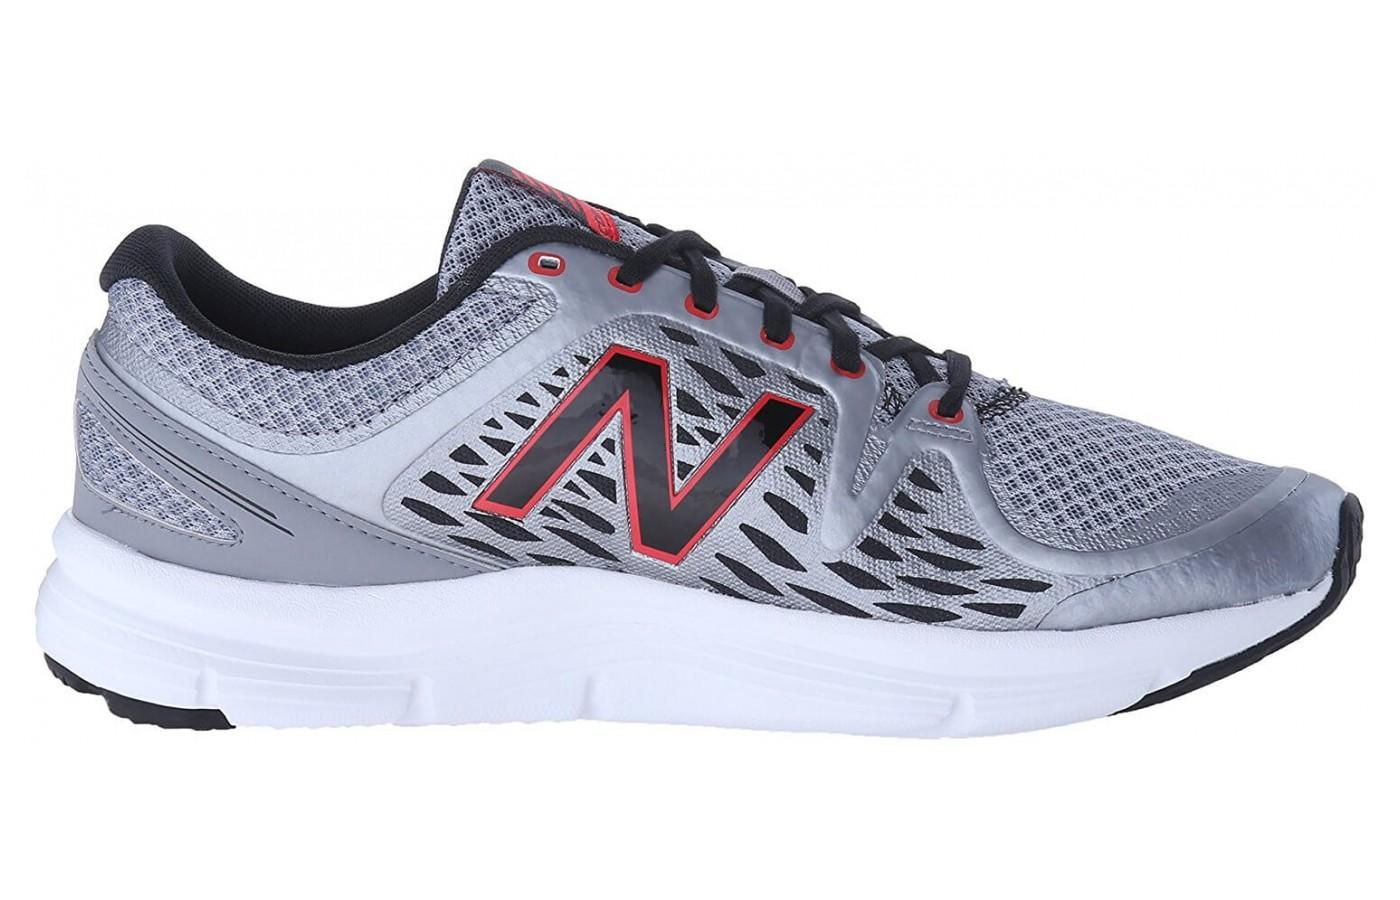 New Balance Fresh Foam Zante v3 Review RIZKNOWS Running Shoes Review!